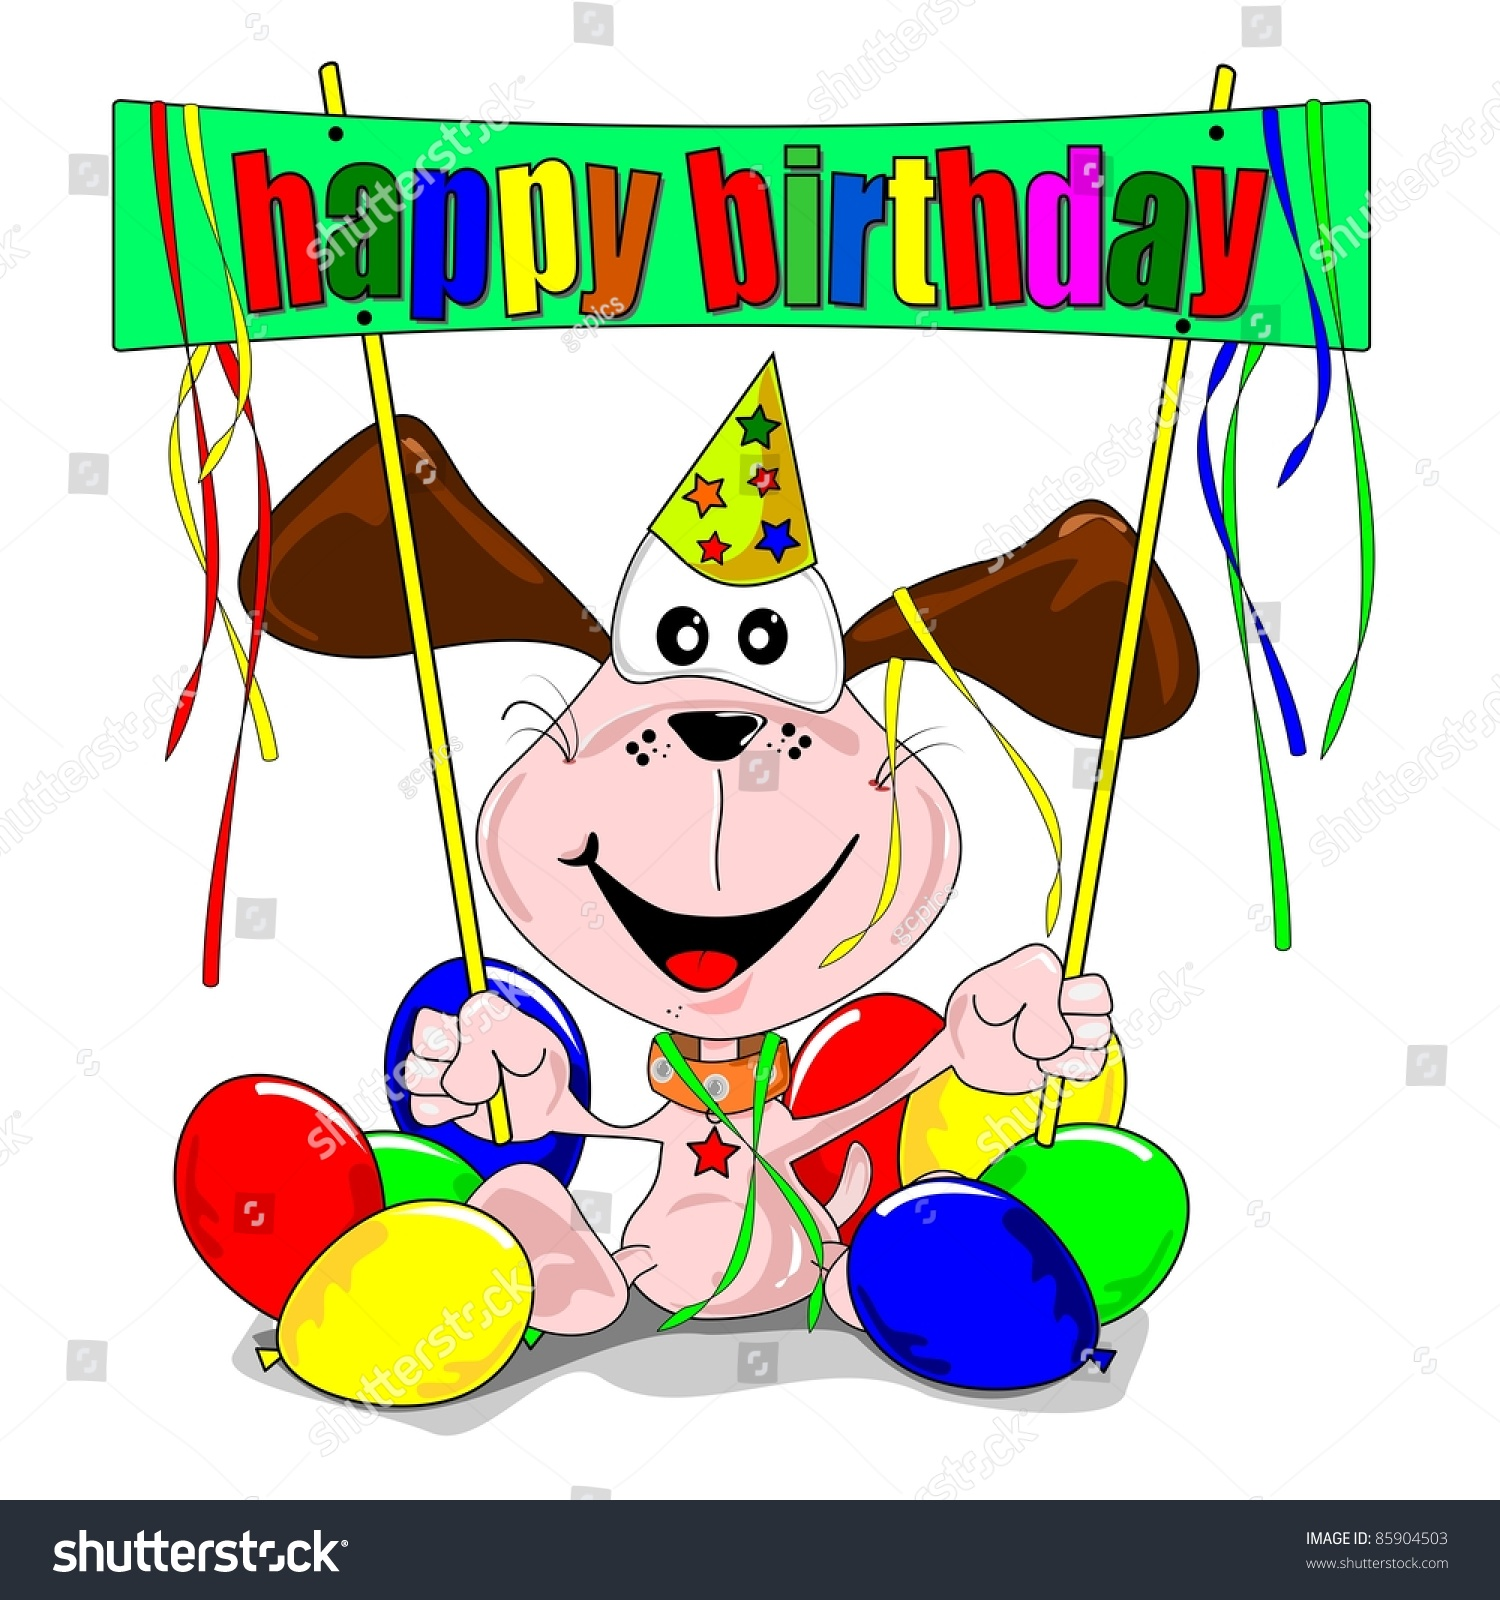 Cartoon dog stock photos images amp pictures shutterstock - Happy Birthday With Cartoon Dog Balloons Party Streamers Wallpaper Gallery Doodle Stock Photos Images